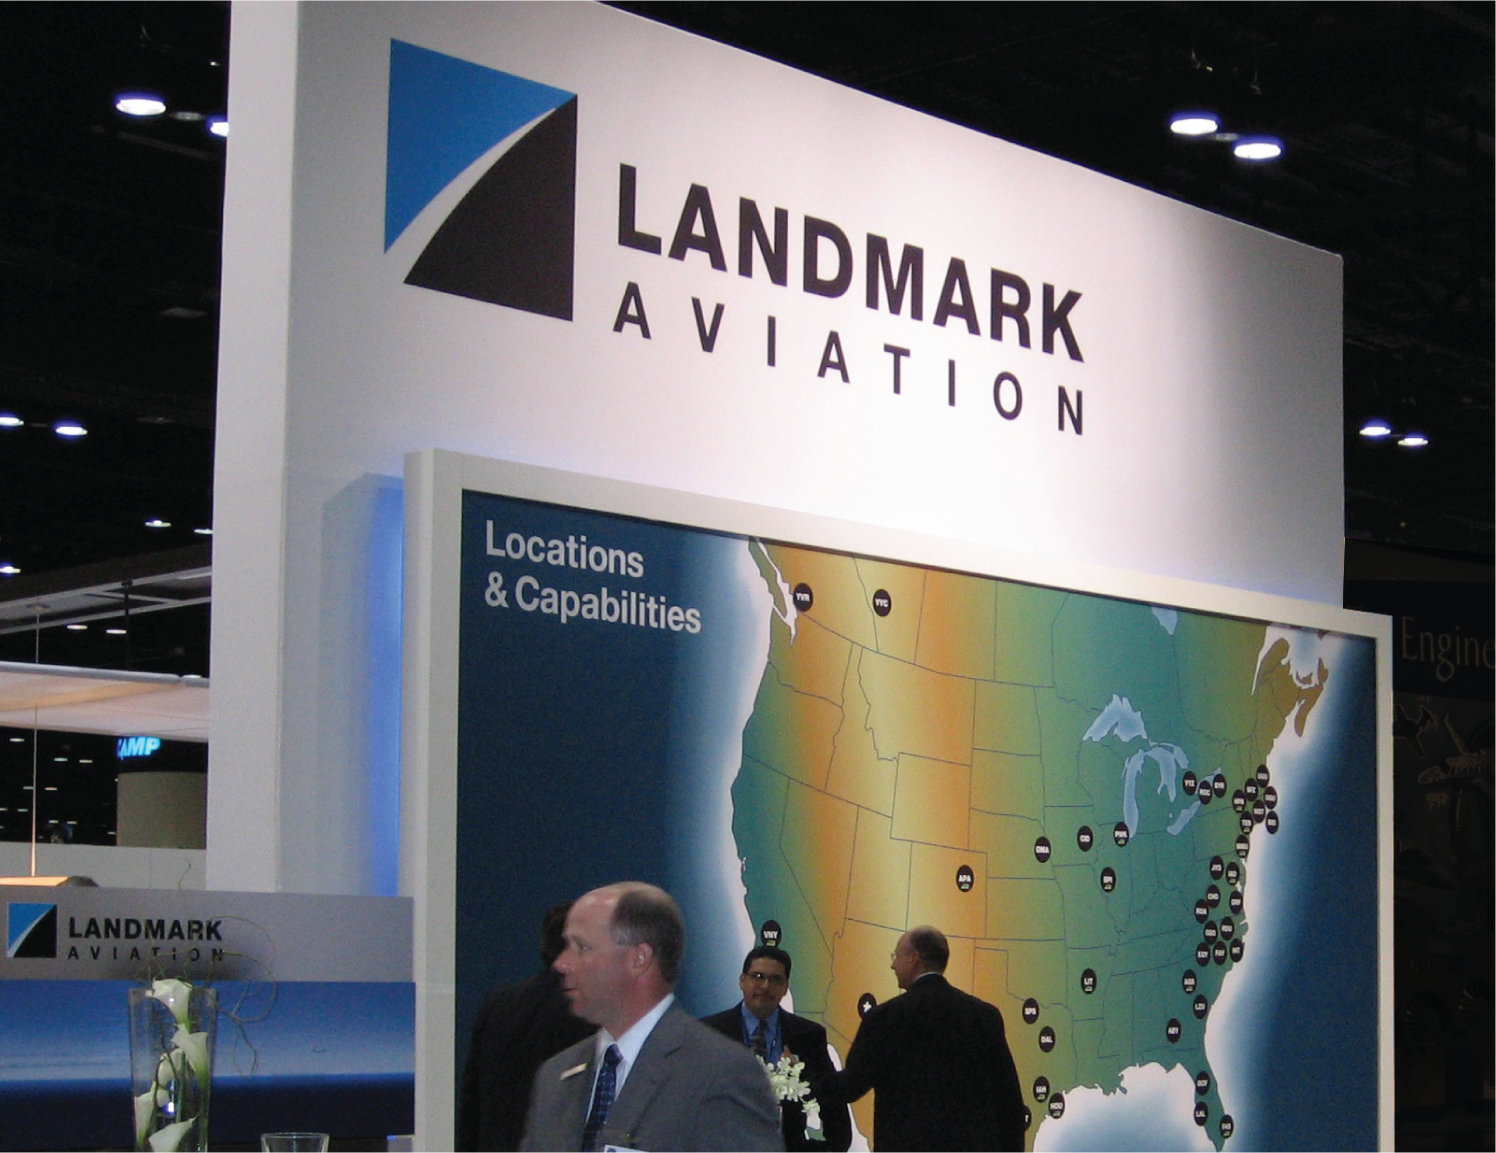 landmark aviation logo example